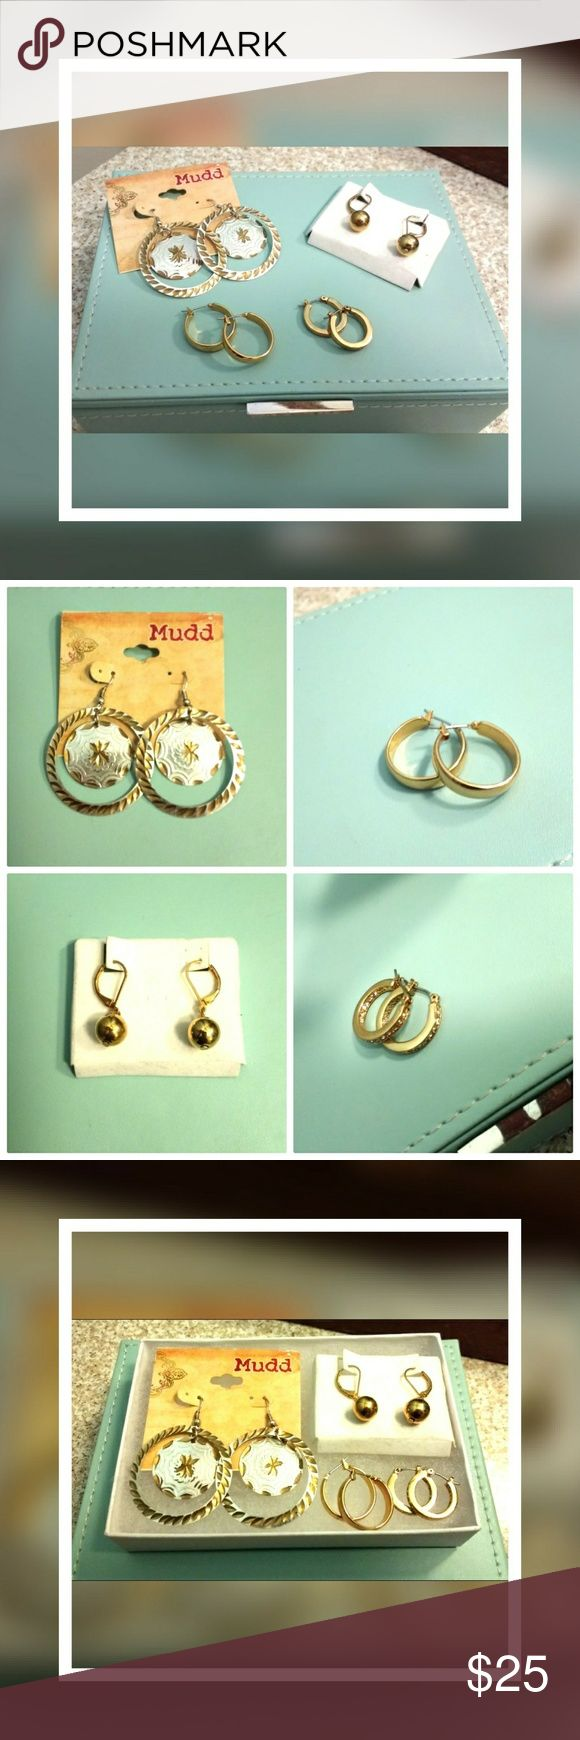 Gold-tone Earring Bundle *NWT Mix of Gold tone earrings!   Arizona Mudd chandelier (NWT): -6 cm long & 4 cm wide  Ball Drop earrings (NWT): - 3 cm long  Simply Chic mini hoops (NWOT): -wide silhouette, 2 cm wide  Dazzling Mini hoops (NWOT): -mini hoops w/ crystals set pave' style, 1.5 cm wide  ALL OF THE EARRINGS ARE FOR PIERCED EARS THEY ARE ALL GOLD-TONE (meaning they are not 14k, so don't ask). Jewelry Earrings